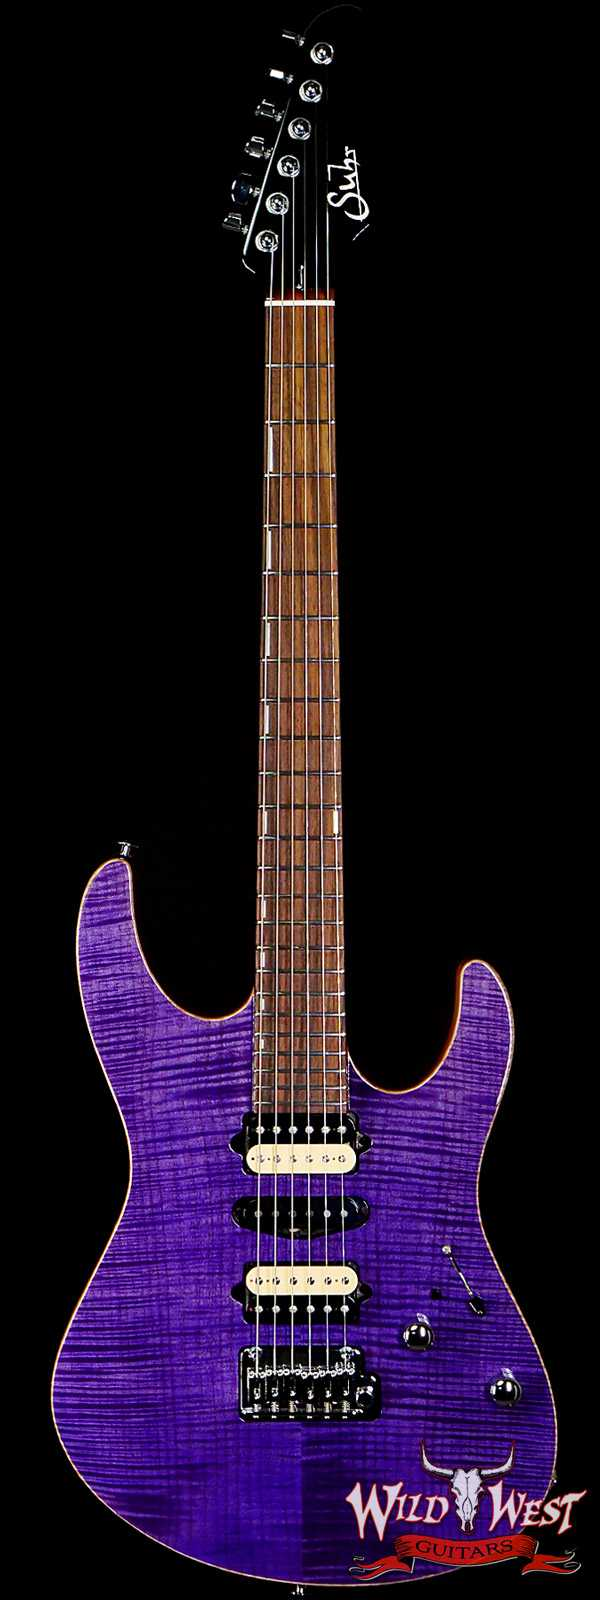 Suhr Custom Modern Set Neck HSH Flame Maple Top Indian Rosewood Fingerboard Trans Purple w/ Blower Switch